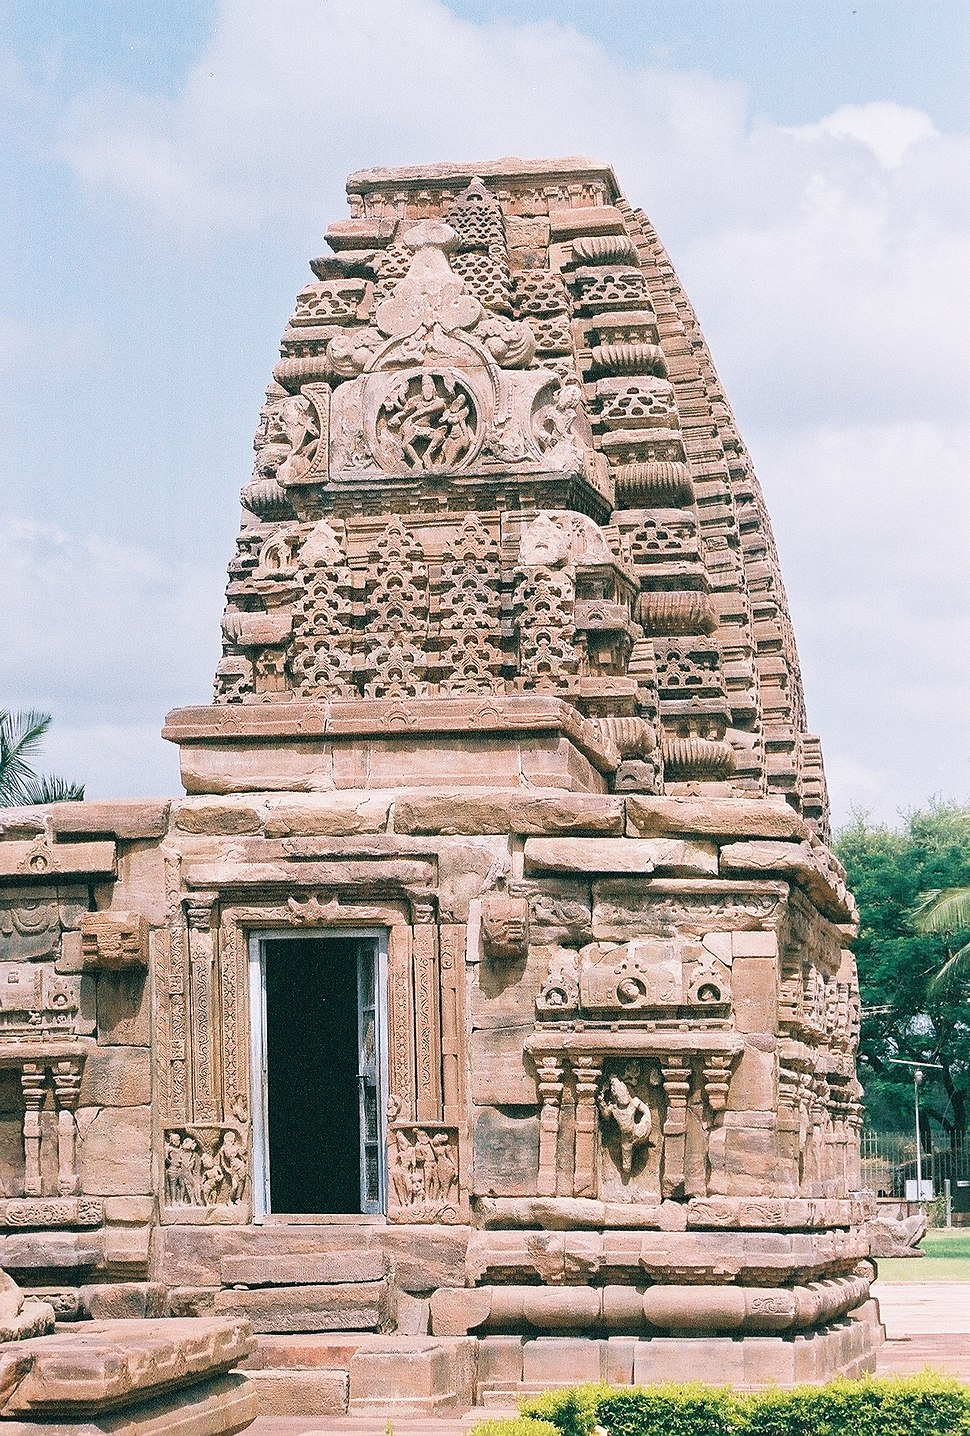 Kasivisvanatha temple at Pattadakal